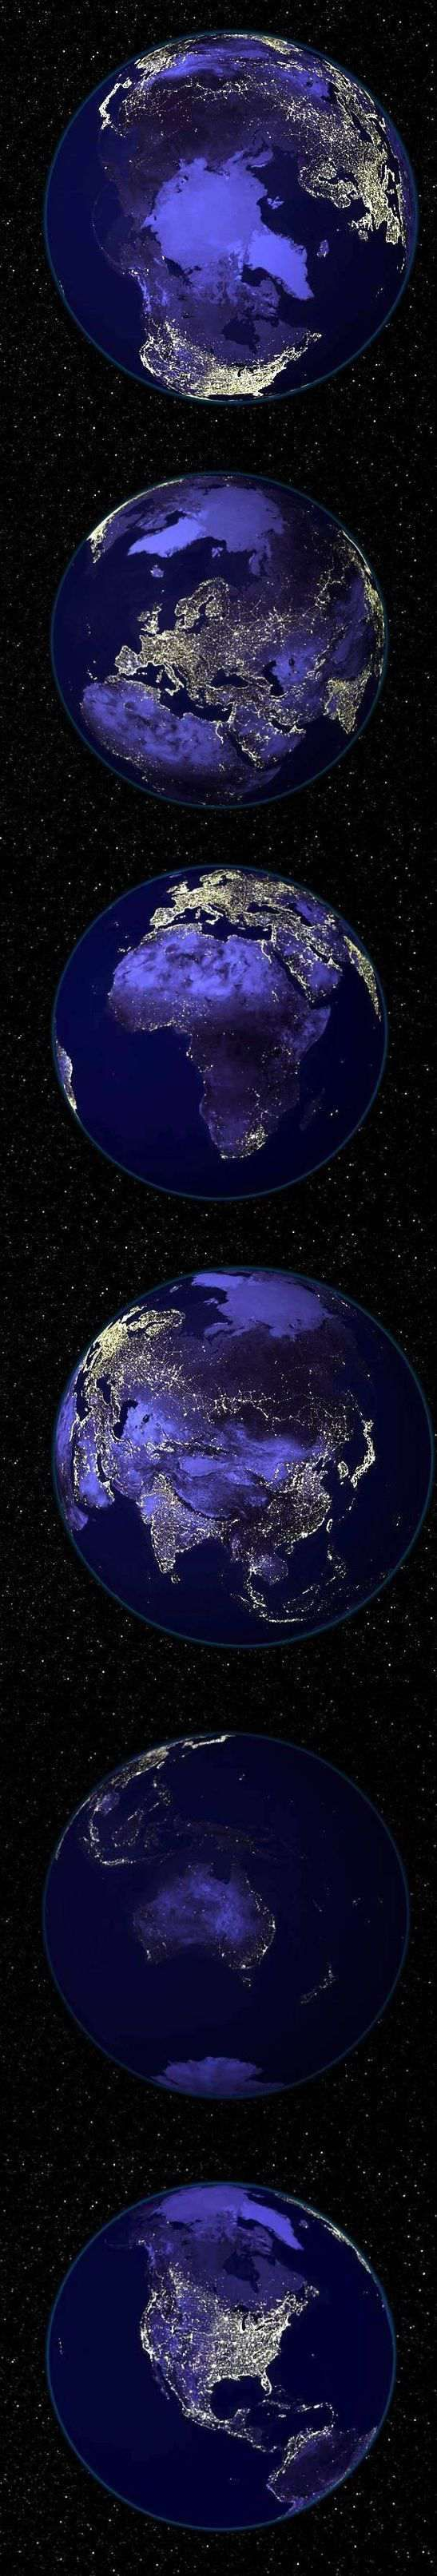 planet earth from space at night - photo #45